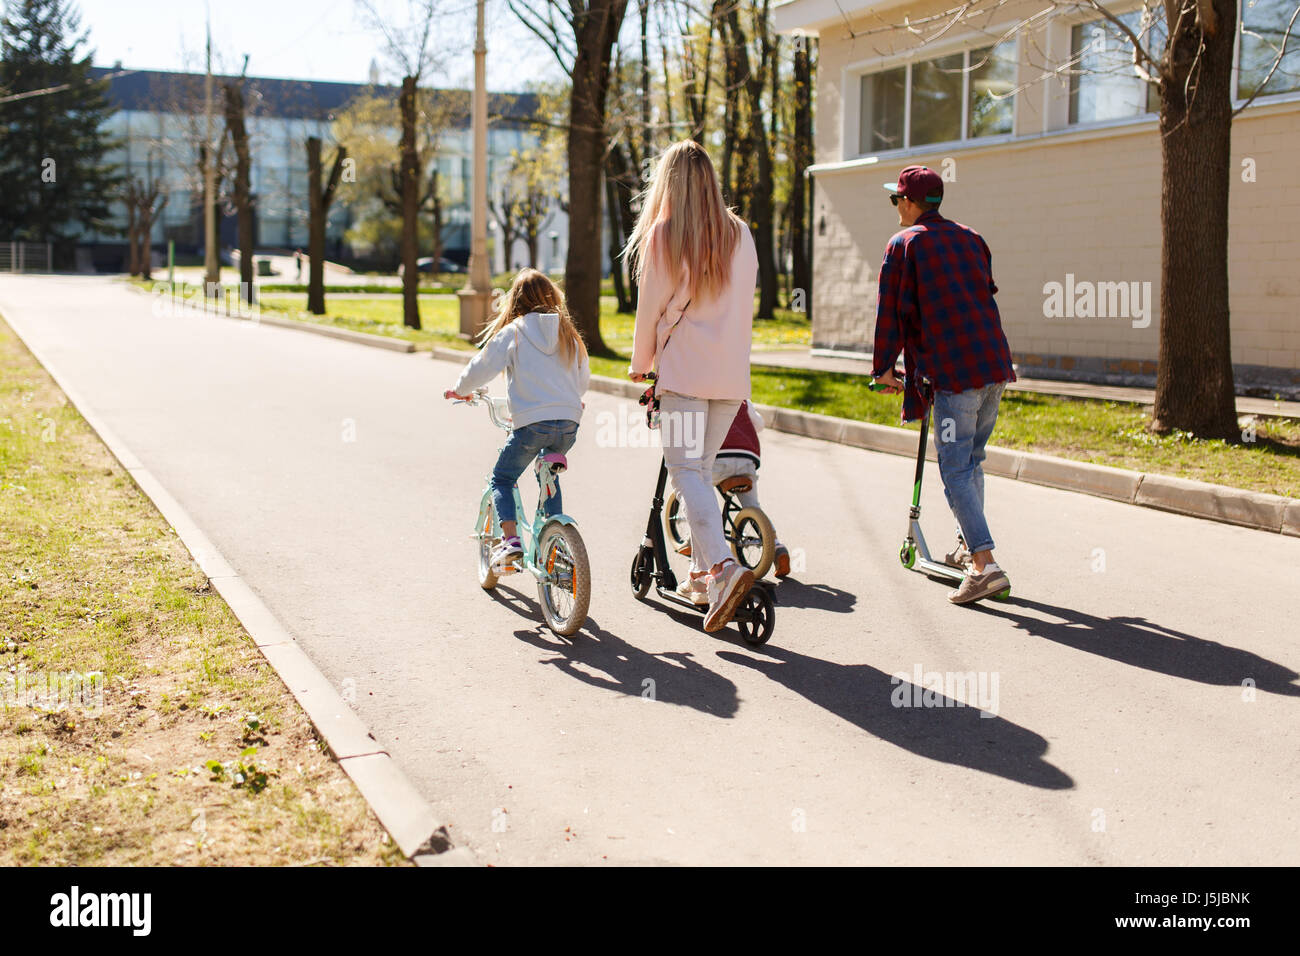 Couple with children on bicycles - Stock Image